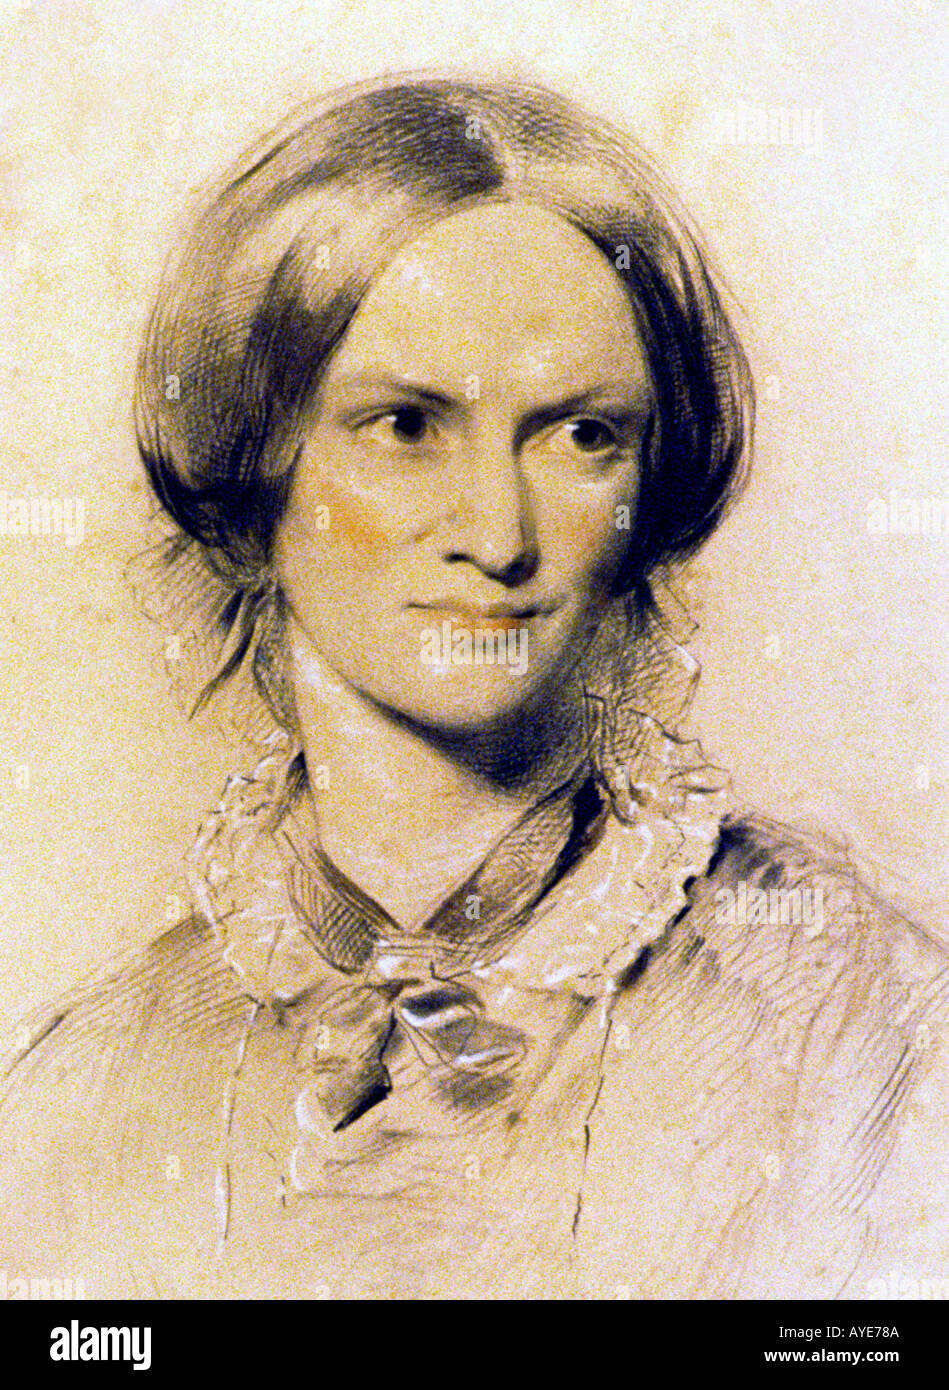 novel jane eyre written by charlotte bronte Jane eyre written by charlotte bronte choose one character from the novel you have read and explore the ways in which this character is presented across the.